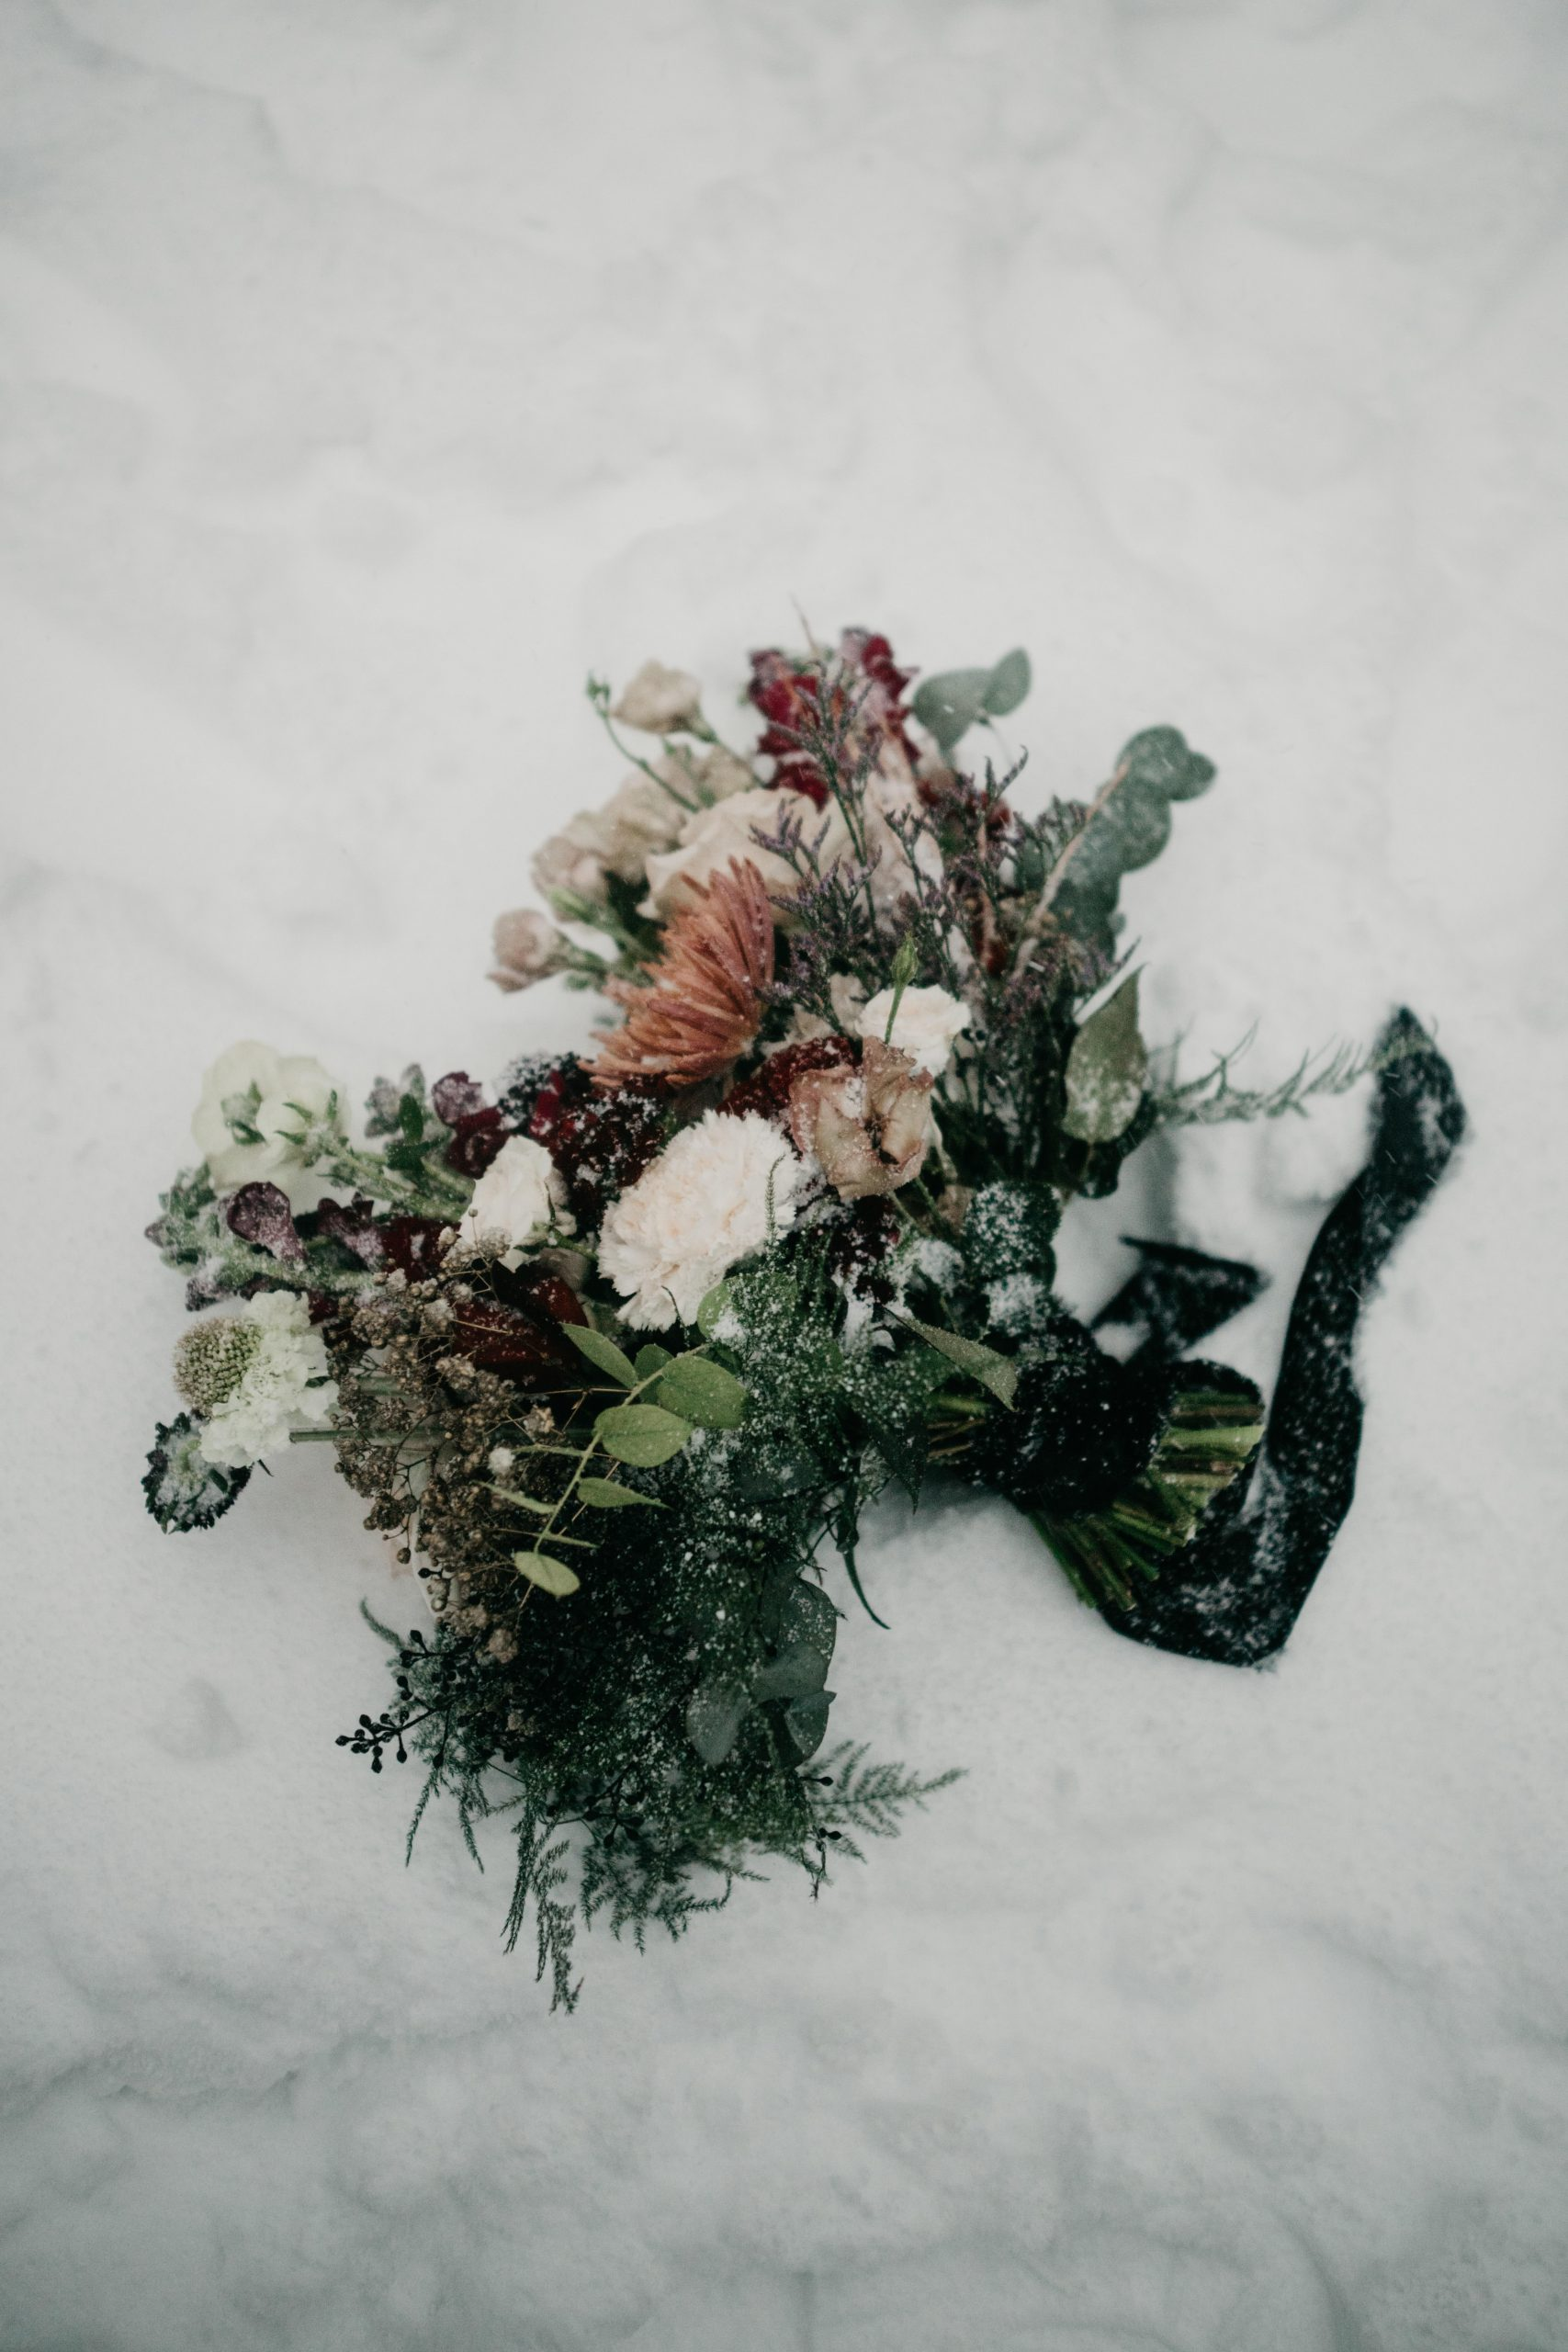 Bridal Bouquet in the snow, image by Fatima Elreda Photo